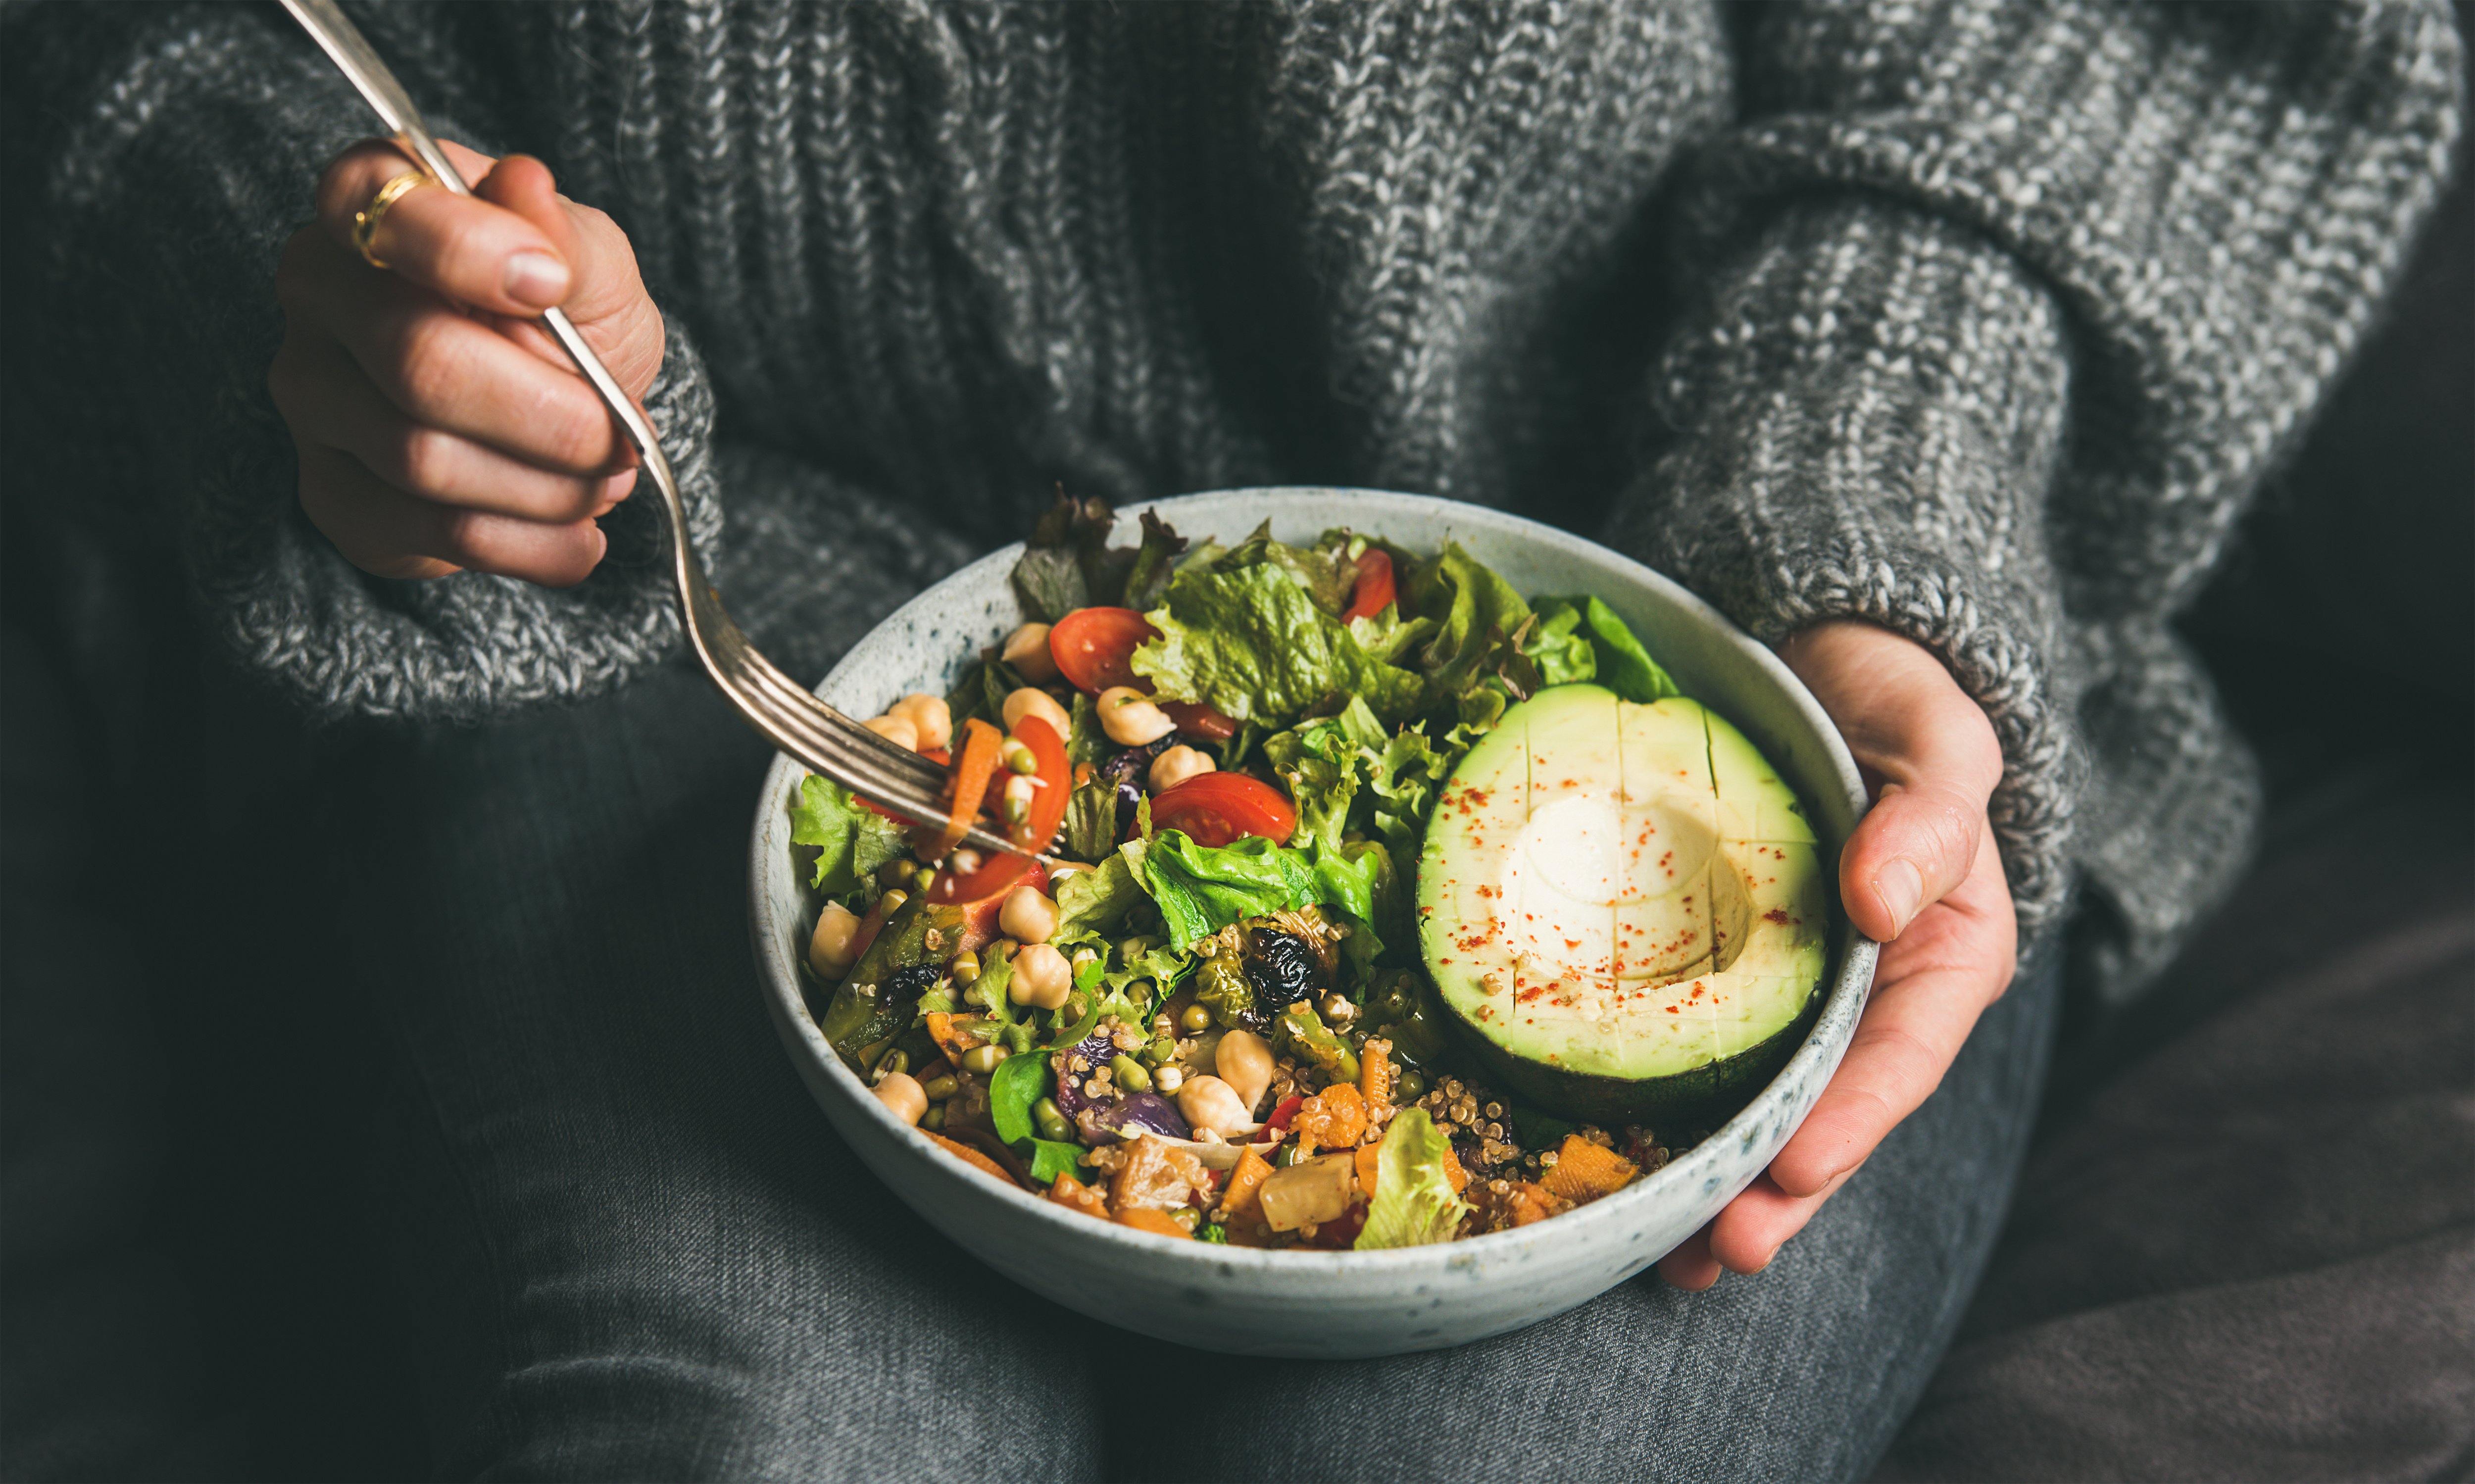 The dietary pattern promoted in the alkaline diet — rich in vegetables, fruits and legumes, and lower in animal proteins and sodium-laden processed foods — happens to be one most health experts recommend for optimal health, as long as you don't take it too far.